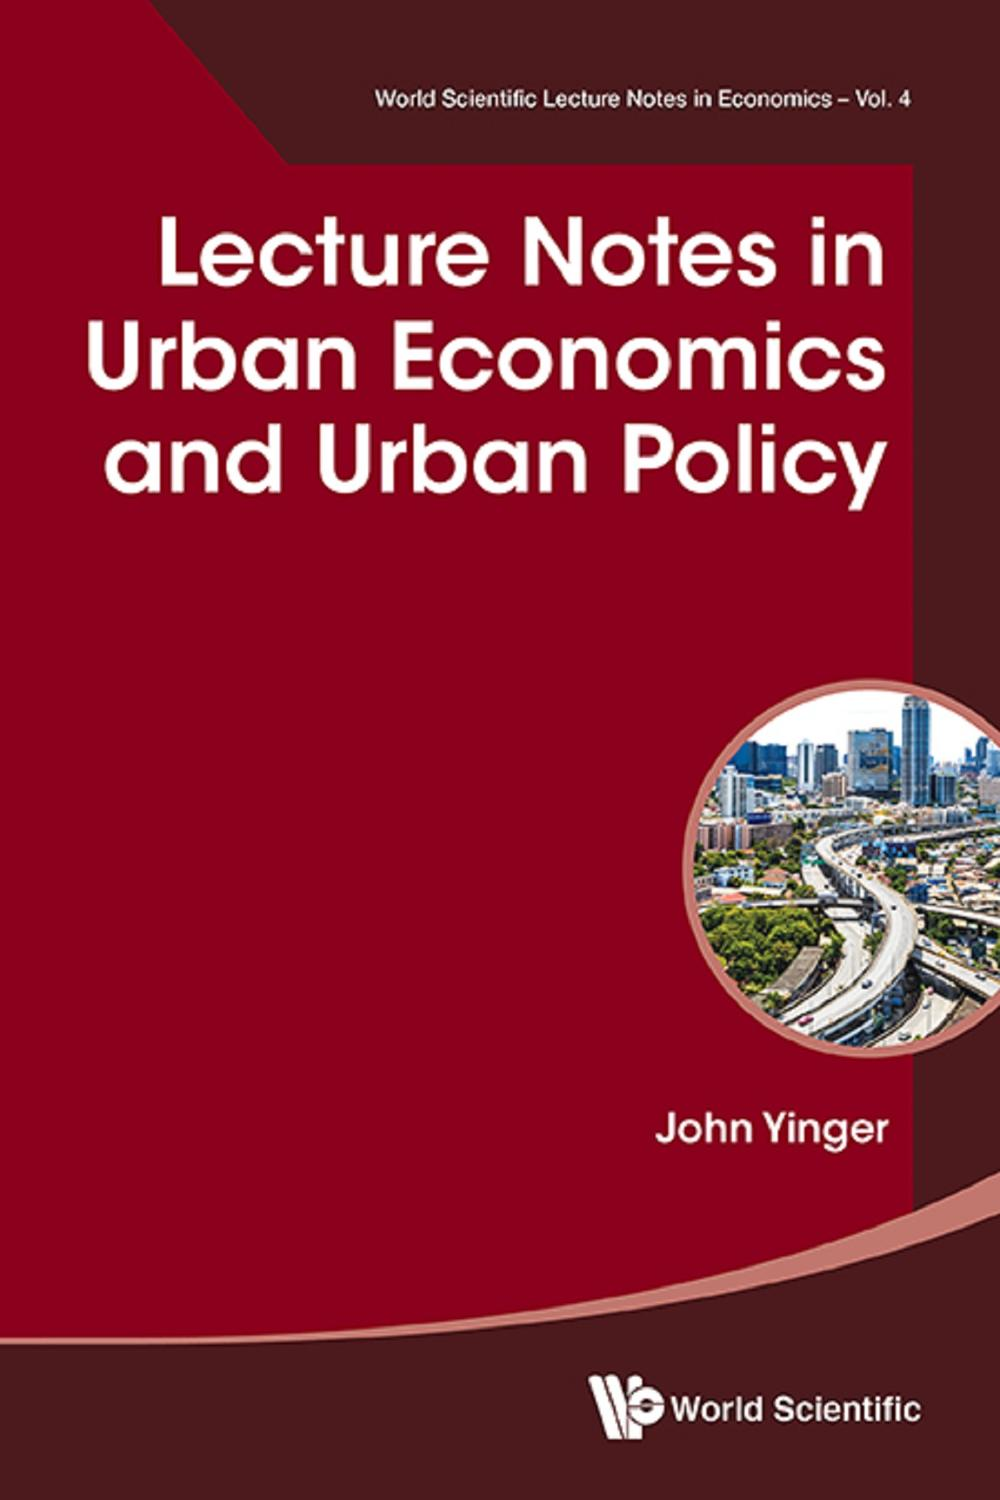 Lecture Notes in Urban Economics and Urban Policy by John